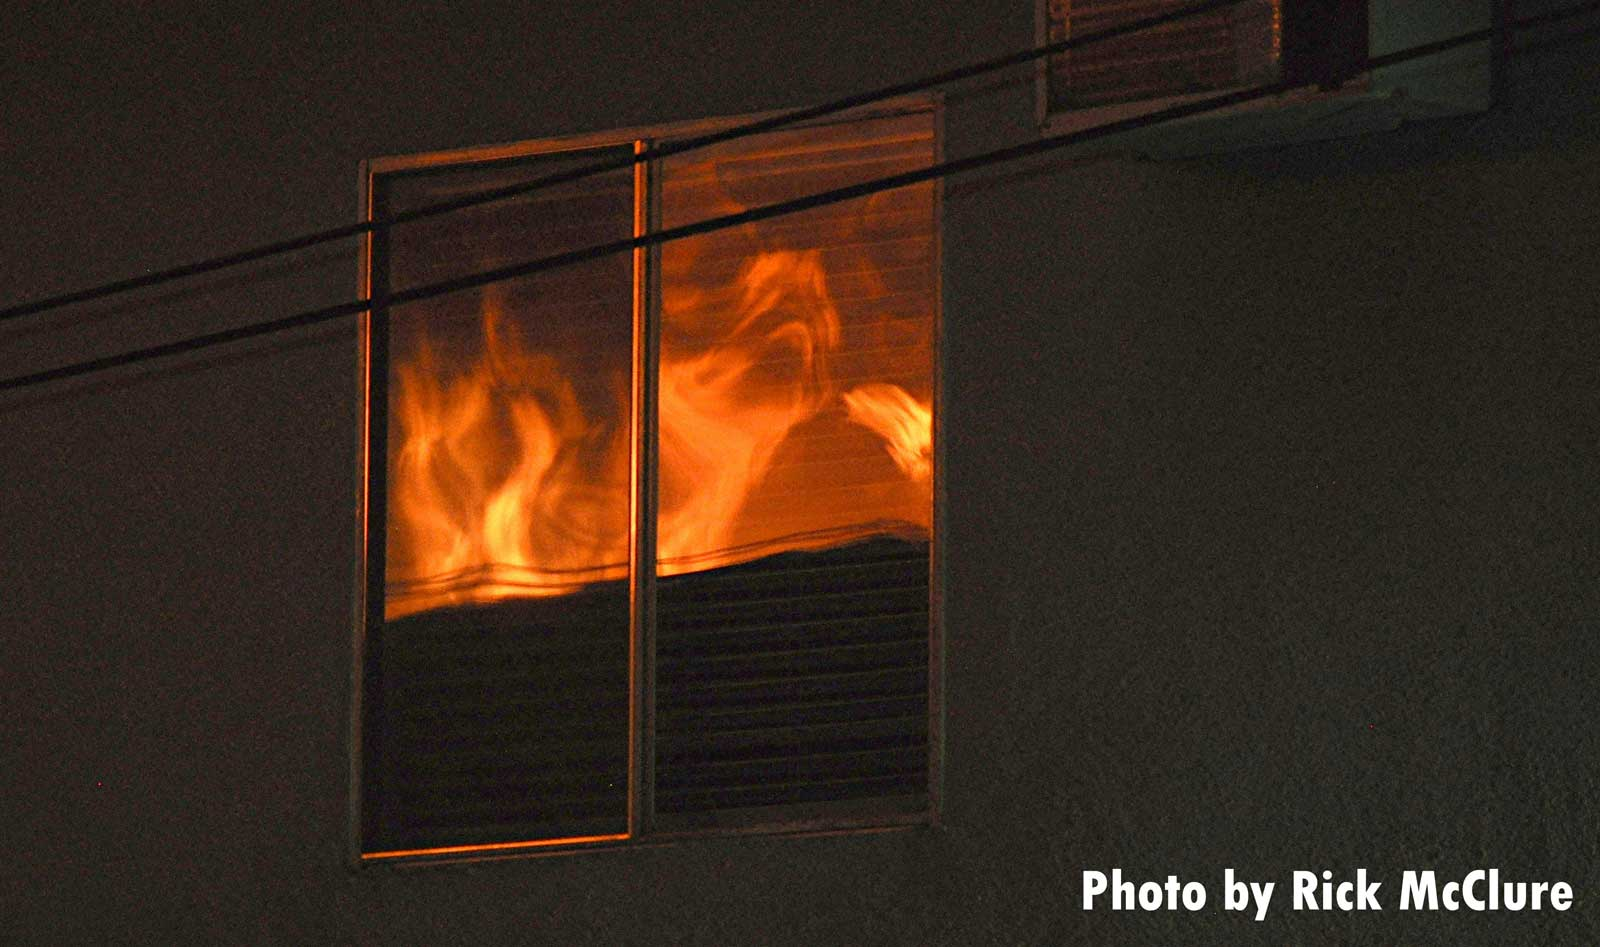 Flames reflect in windows